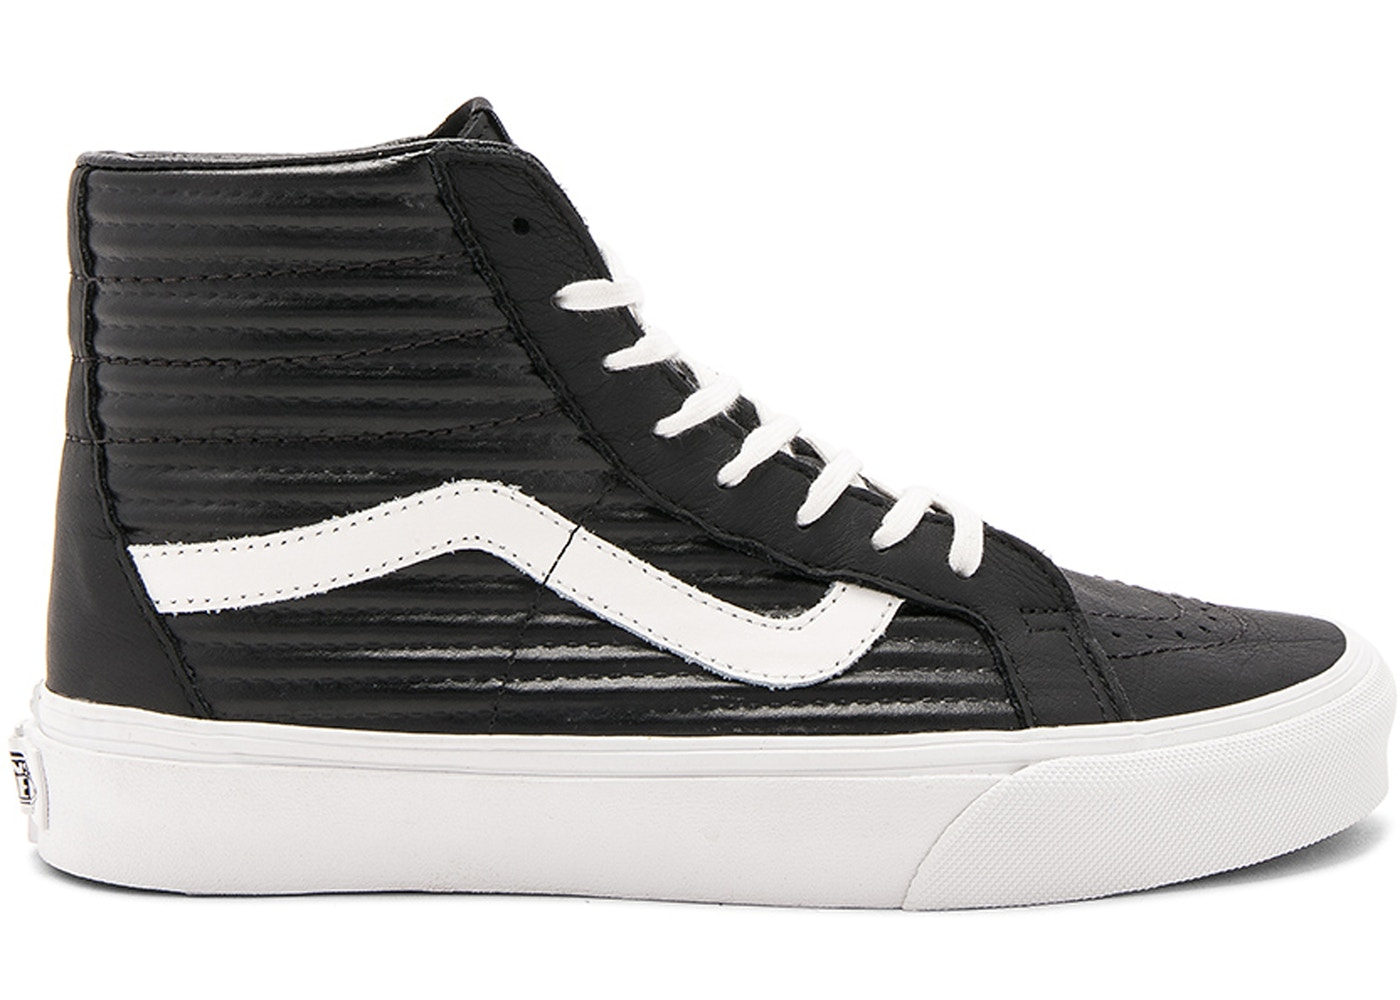 aa9bc2ad7e06 Sell. or Ask. Size: 12.5. View All Bids. Vans Sk8-Hi Moto Leather Black  White ...